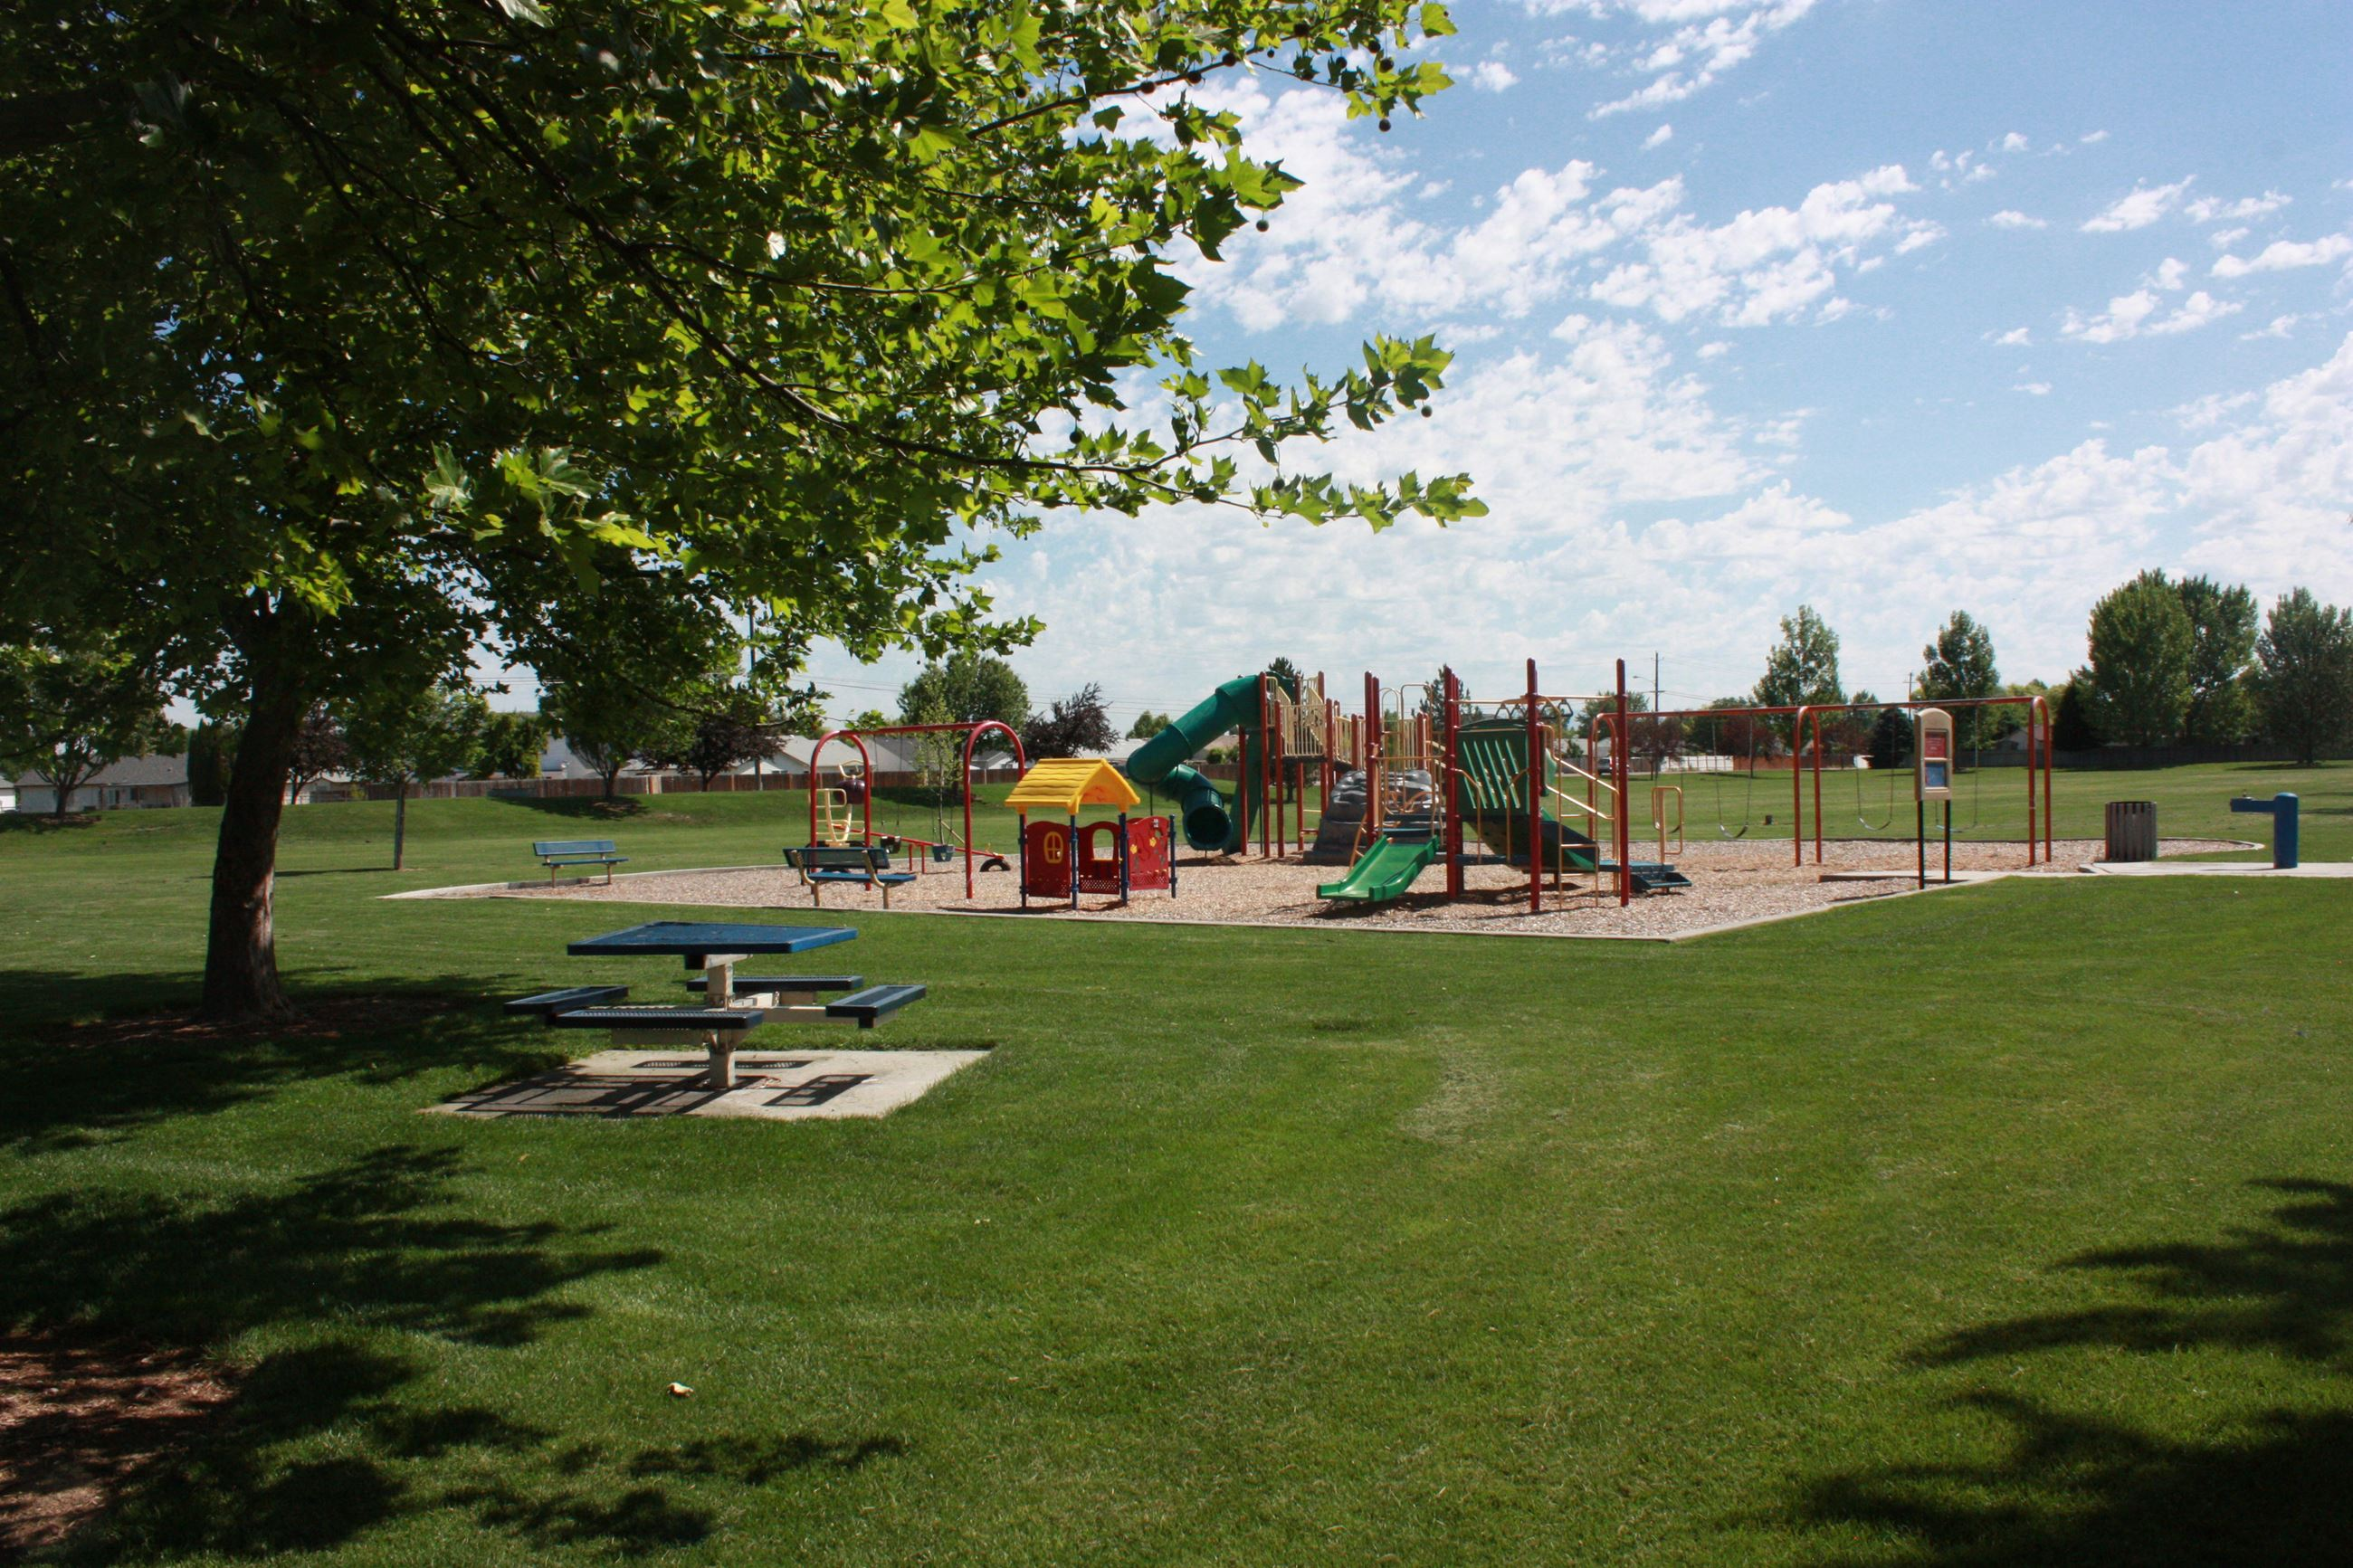 Large play structure with picnic table in front